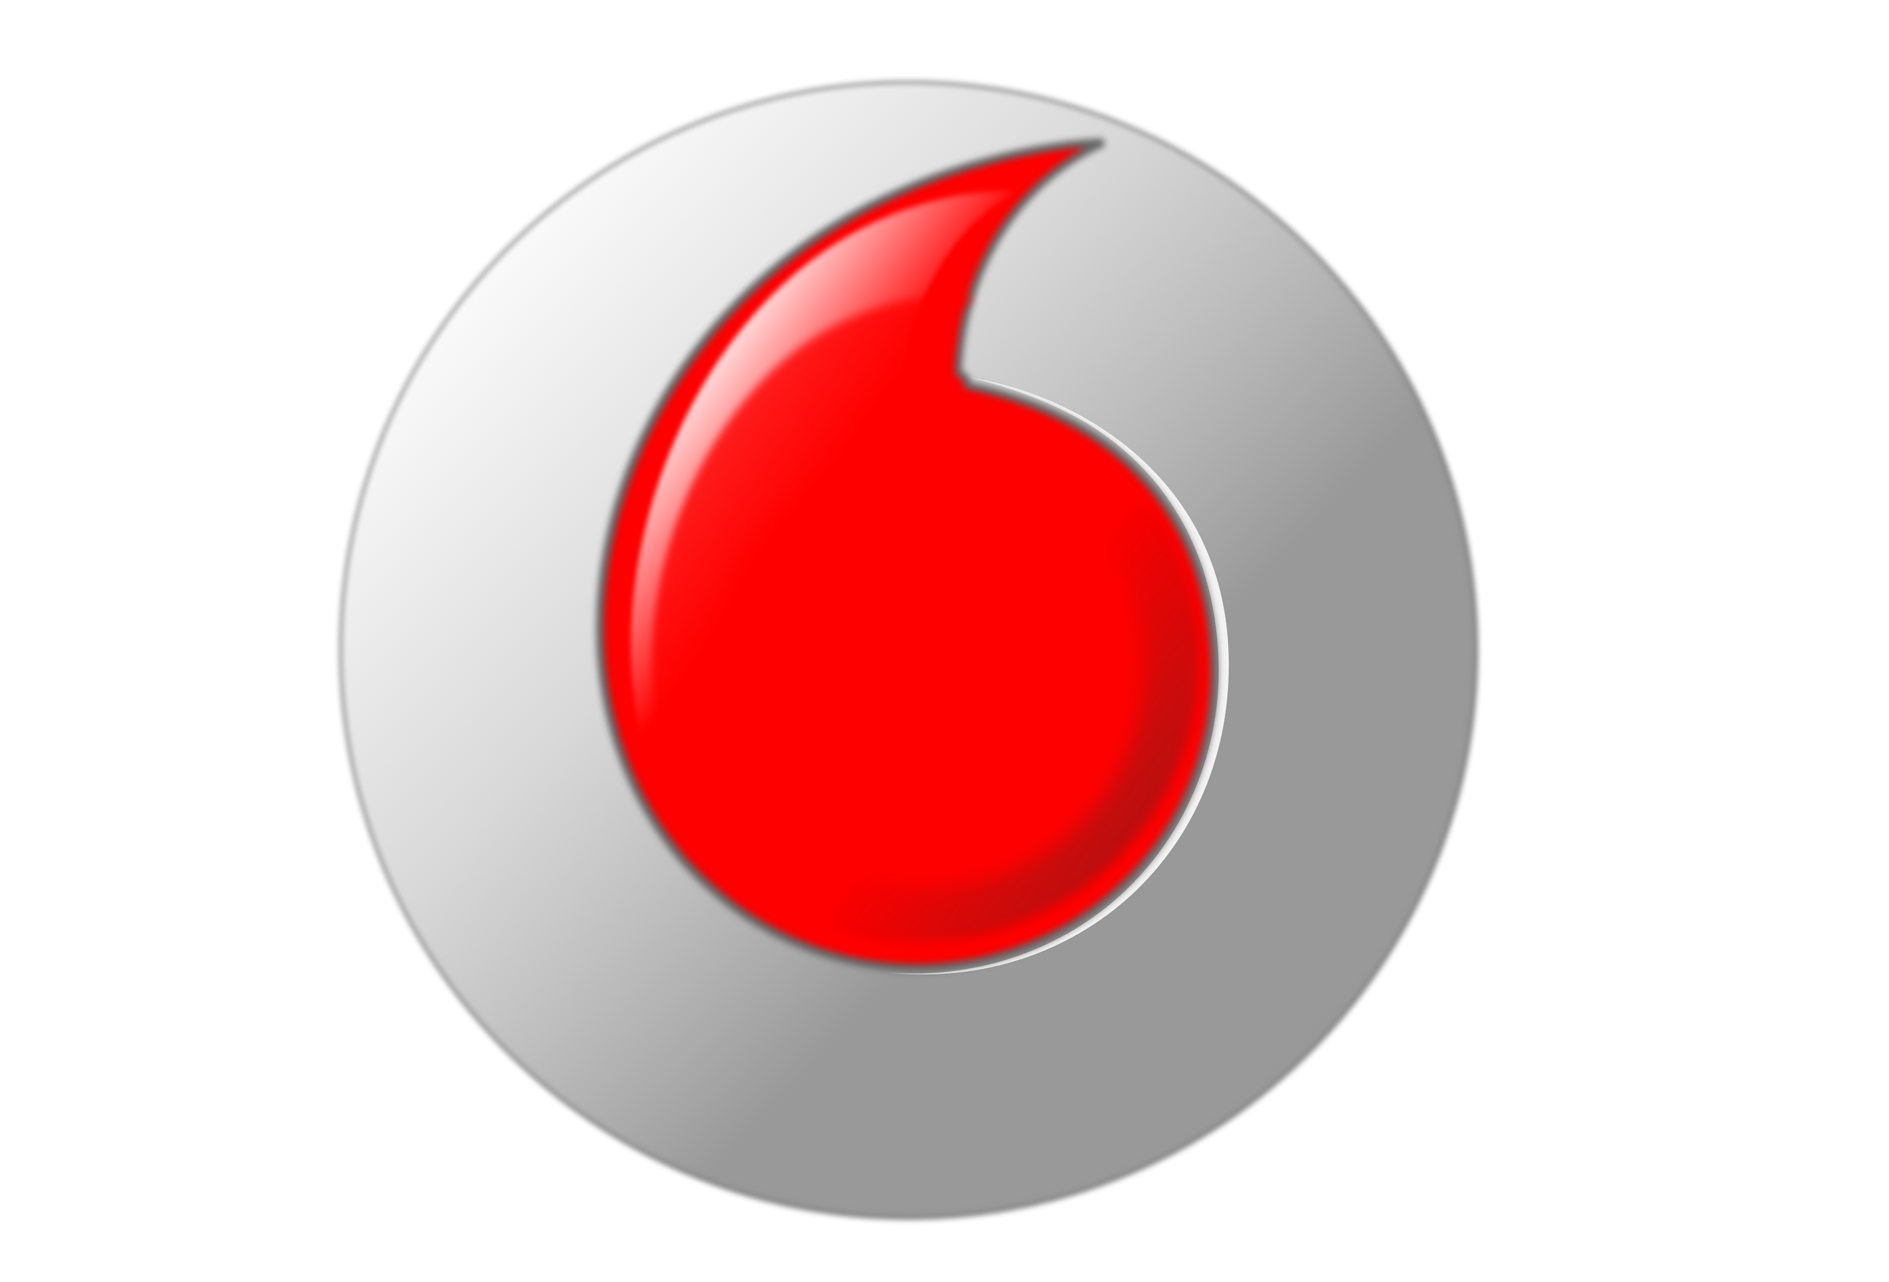 Bmobile vodafone clipart banner library library Vodafone PNG Transparent Vodafone.PNG Images. | PlusPNG banner library library